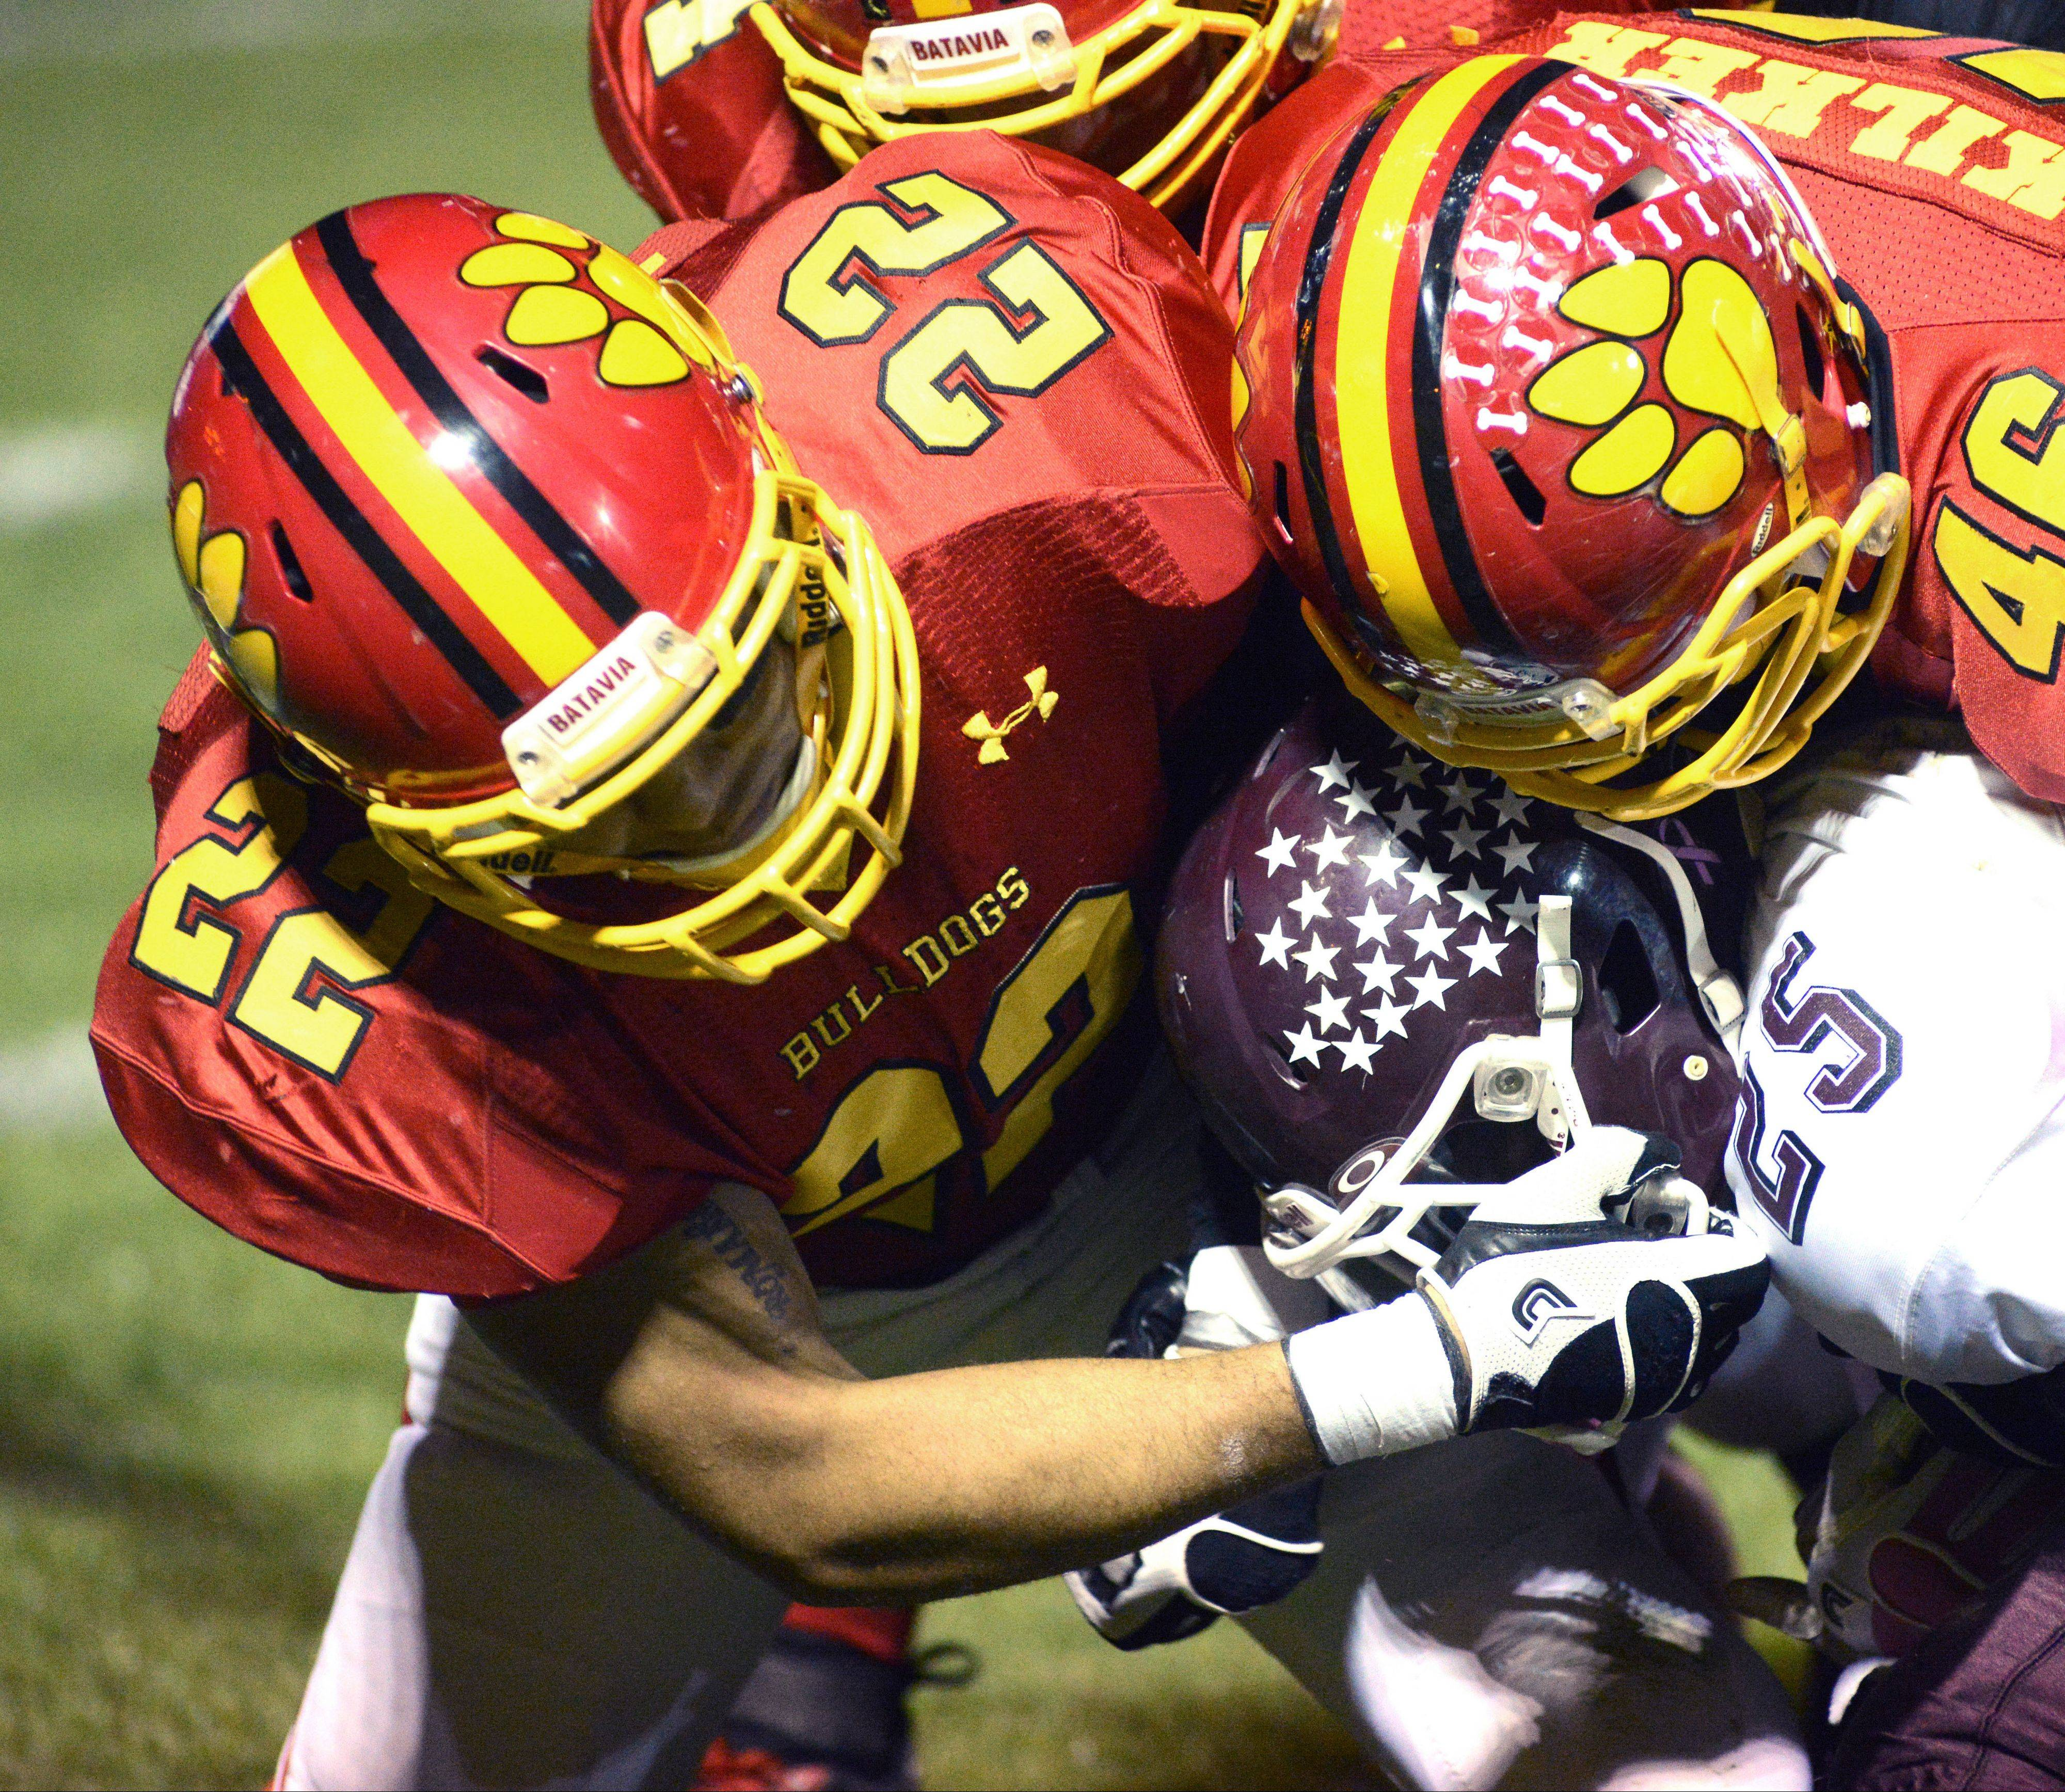 Like Michael Moffatt pictured below, Anthony Thielk (22) is a three-year starter on a Batavia defense that is playing as well as any defense in the state according to Bulldogs coach Dennis Piron.